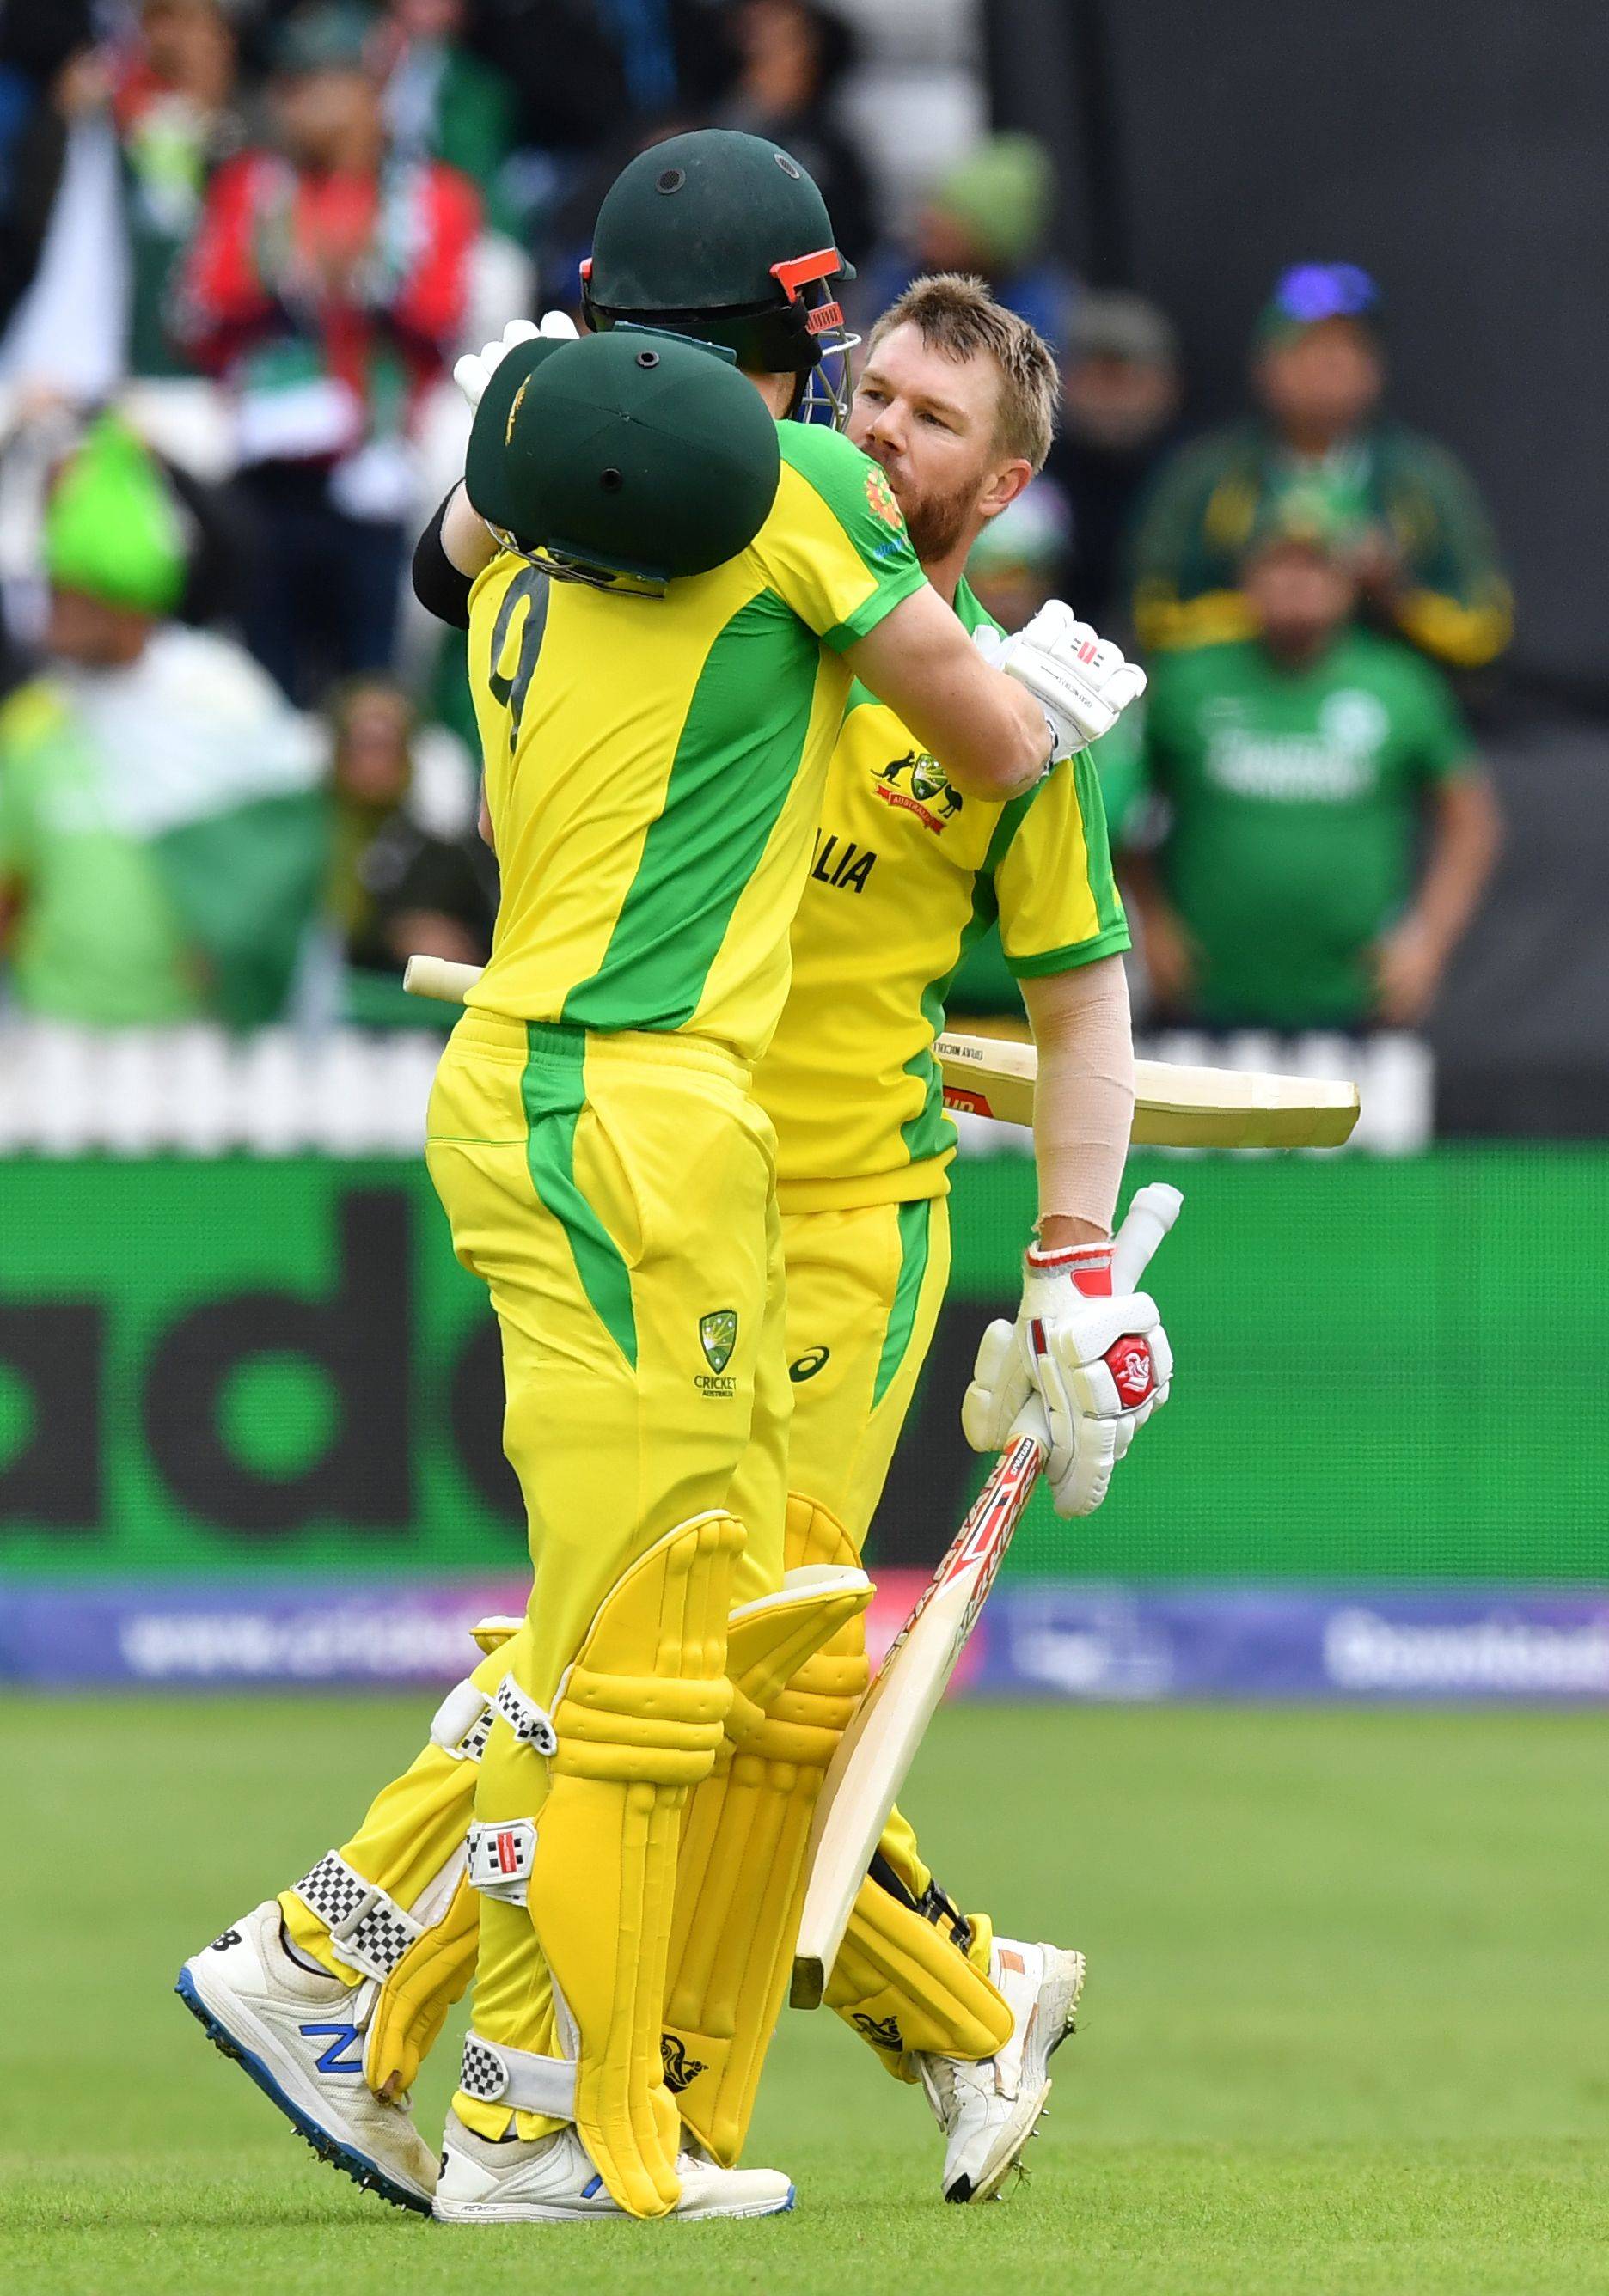 Australia´s David Warner (R) celebrates with Australia´s Shaun Marsh after scoring a century (100 runs) during the 2019 Cricket World Cup. Photo: AFP